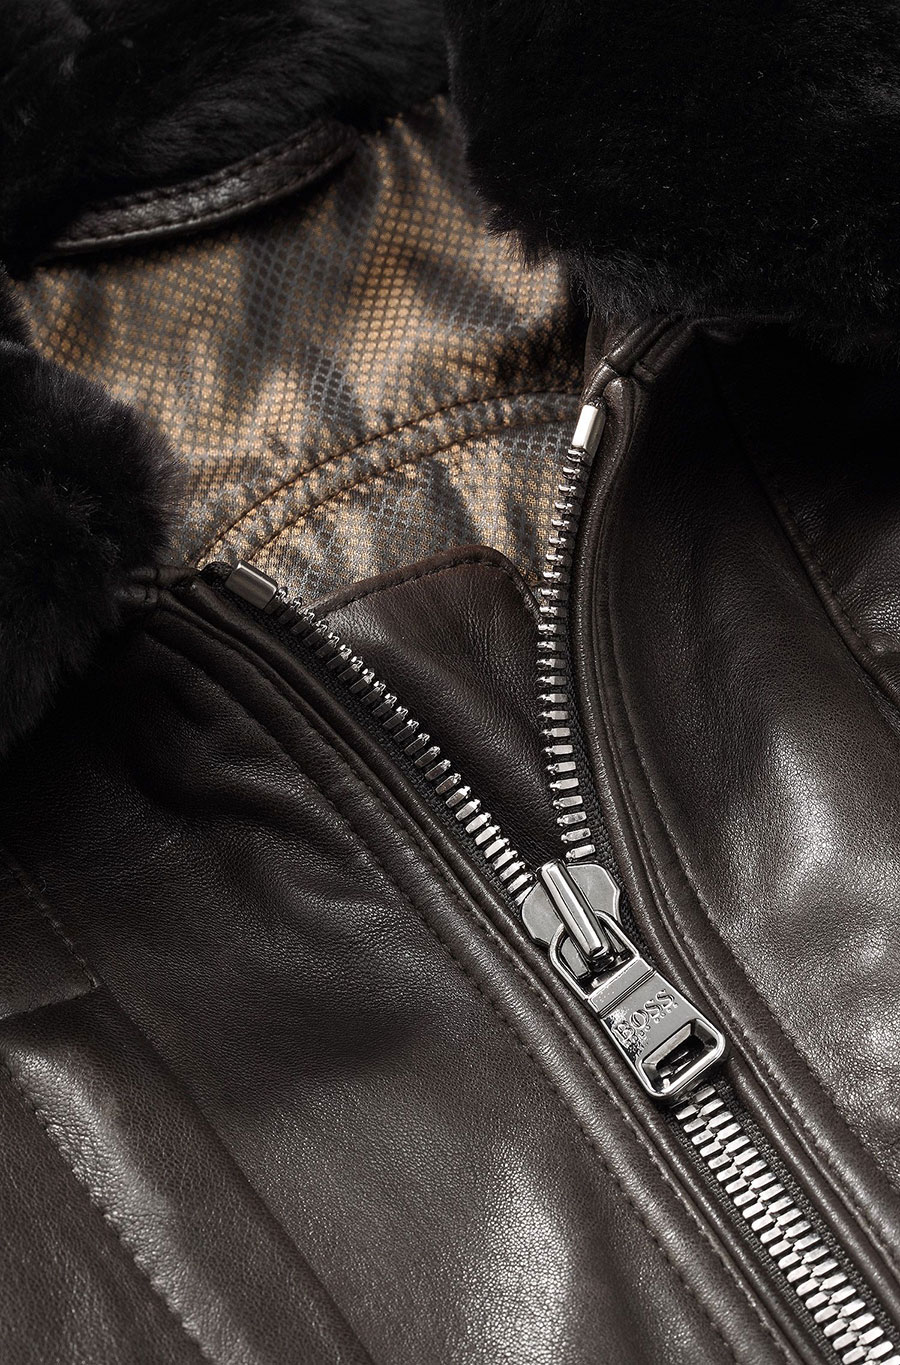 Limited-edition-Mille-Miglia-leather-jacket-Gmiglio-by-BOSS_04